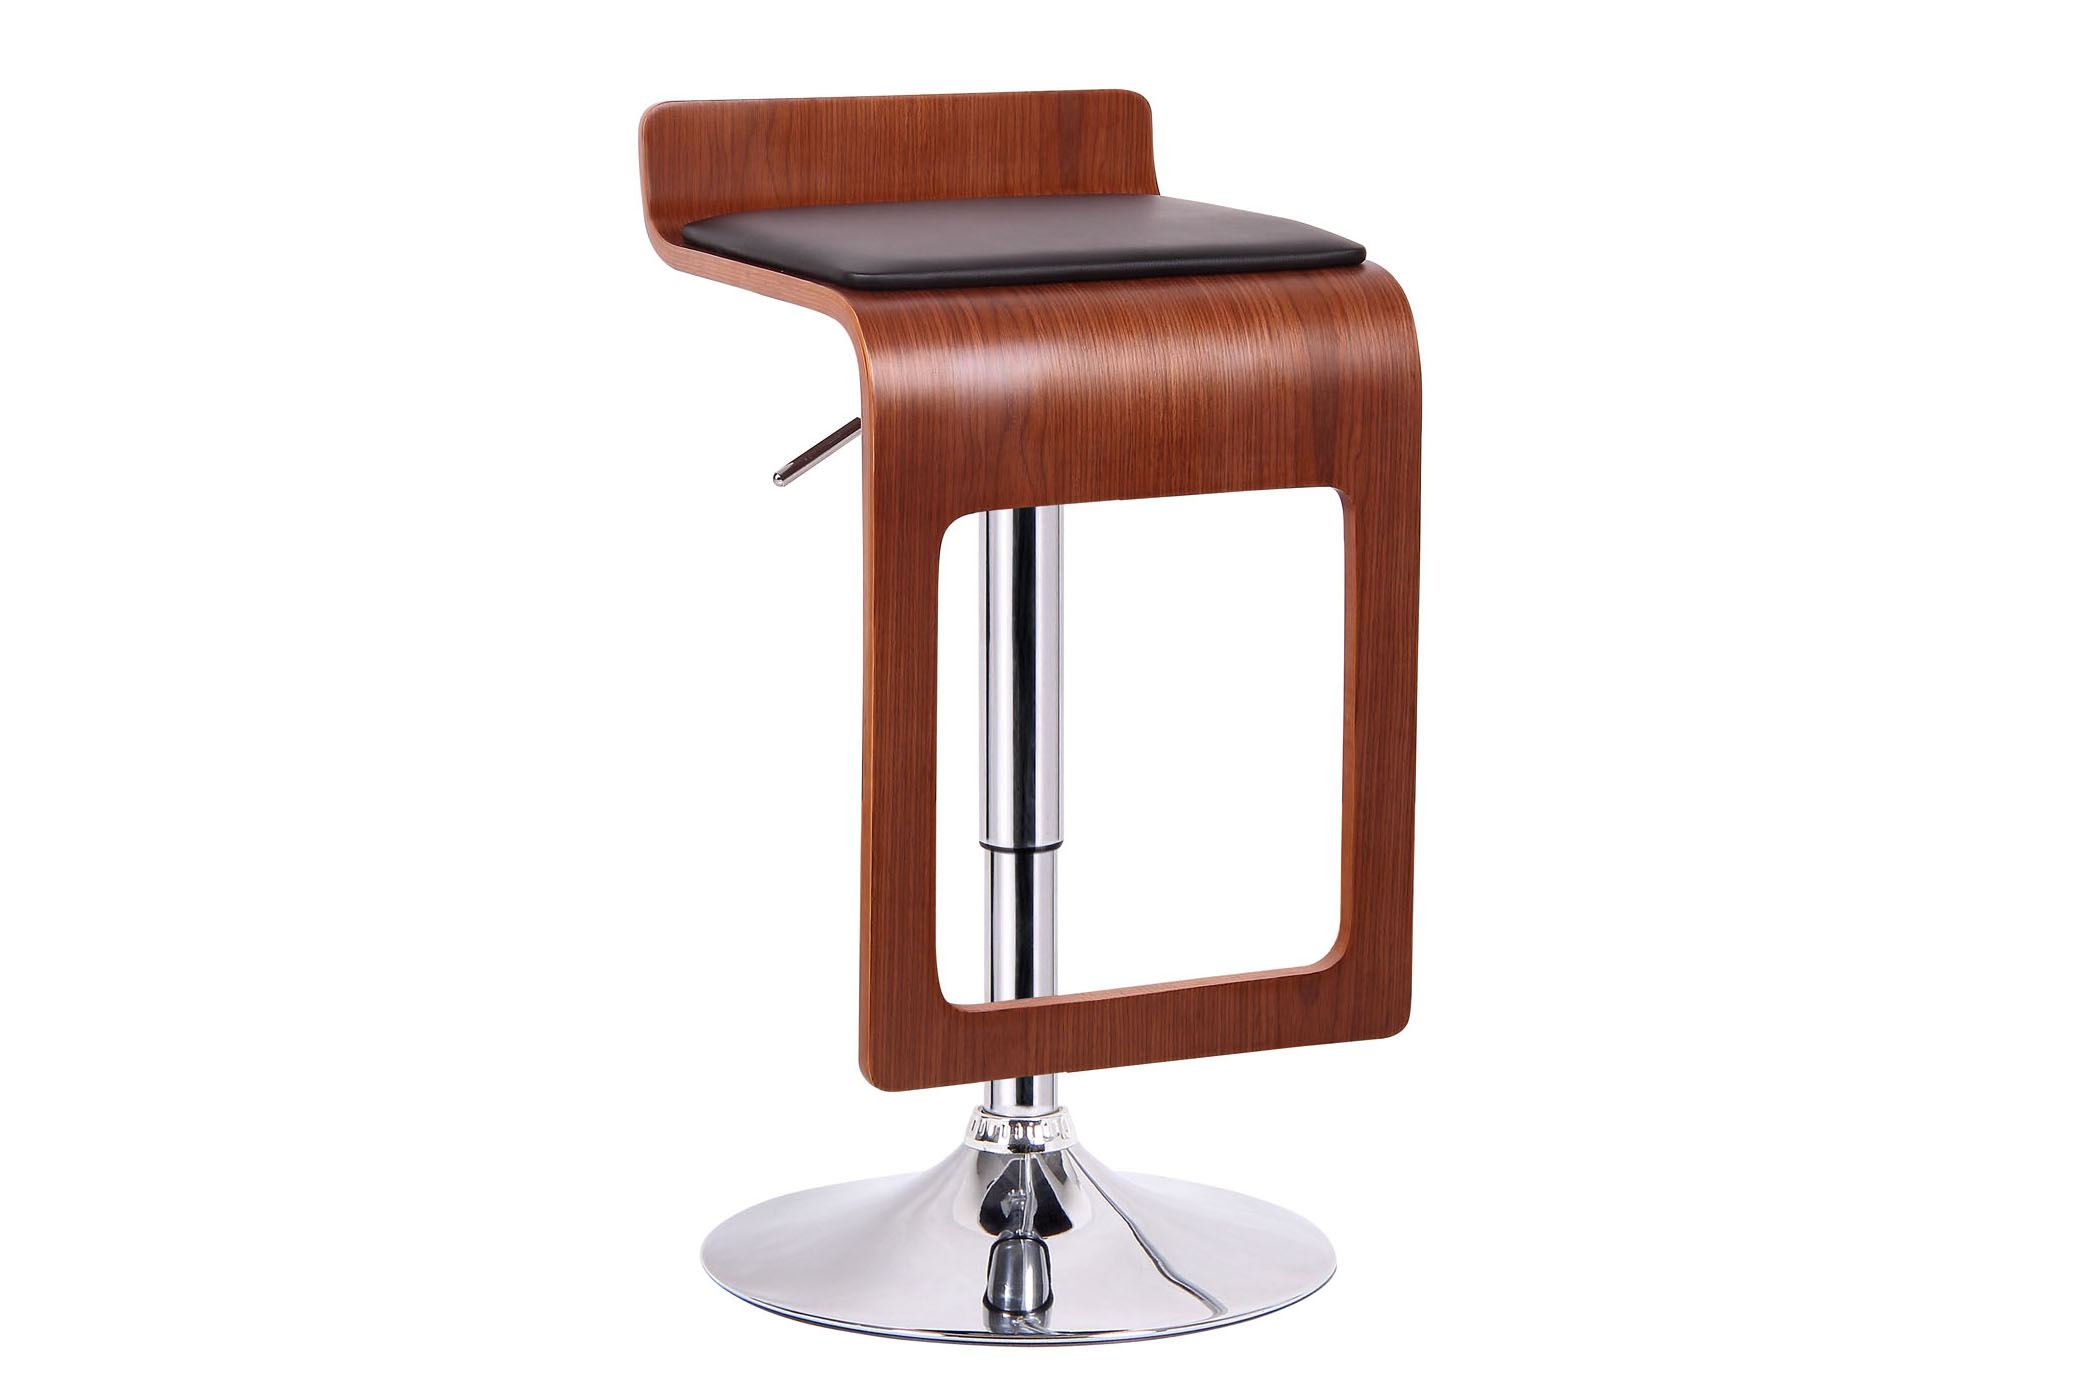 Baxton Studio Murl Walnut and Black Modern Bar Stool Set Of Two Murl Walnut and Black Modern Bar Stool ,IESD-2075-1-walnut/black-PSTL (2),compare Murl Walnut and Black Modern Bar Stool , best price on Murl Walnut and Black Modern Bar Stool ,discount  Murl Walnut and Black Modern Bar Stool ,cheap  Murl Walnut and Black Modern Bar Stool